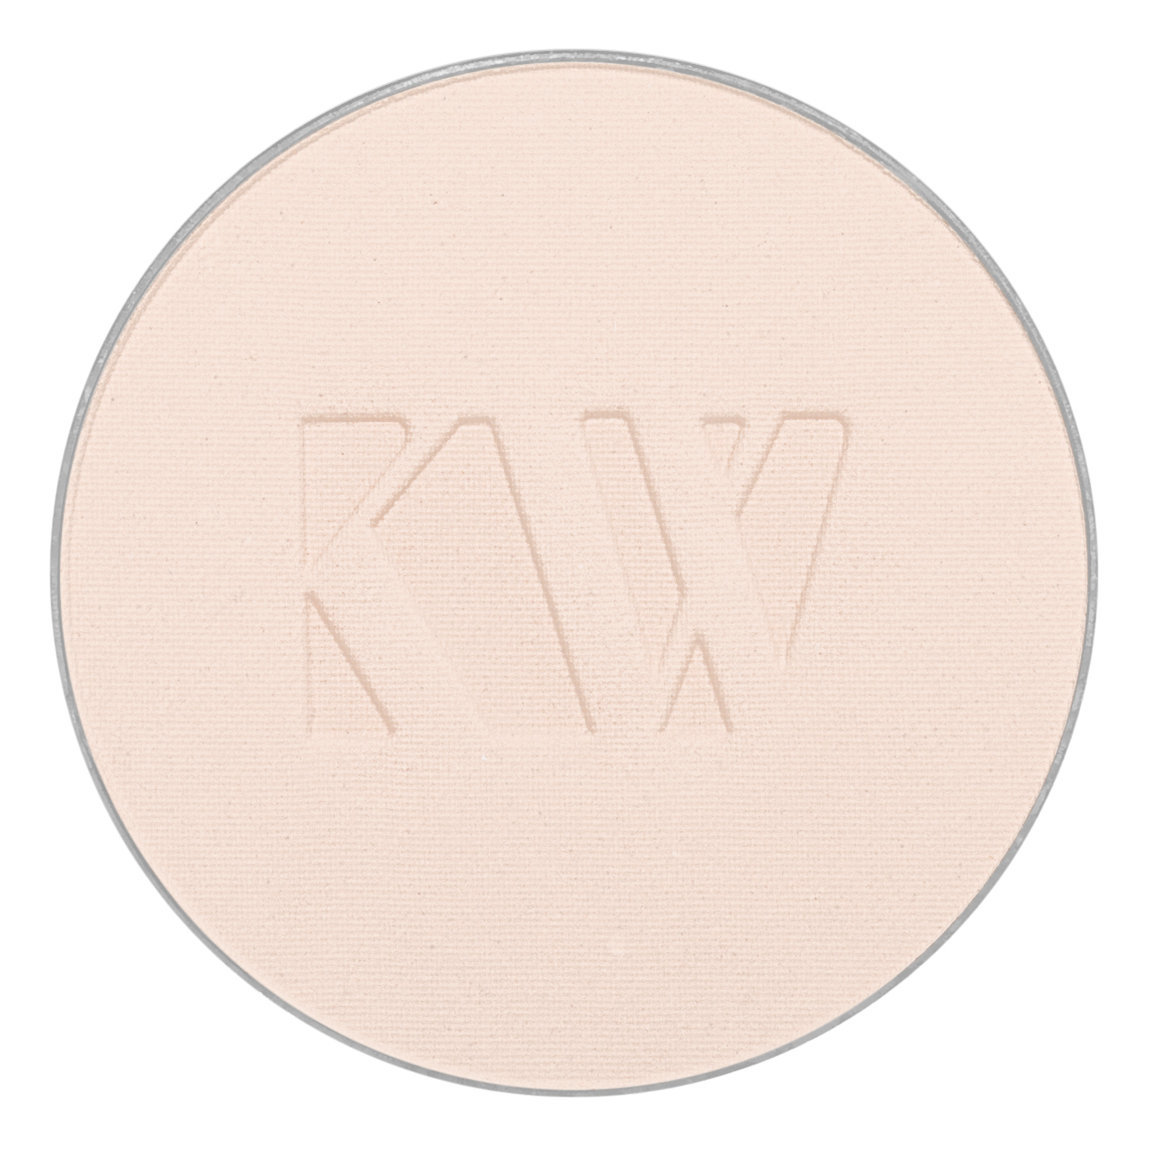 Kjaer Weis Powder Refill product swatch.